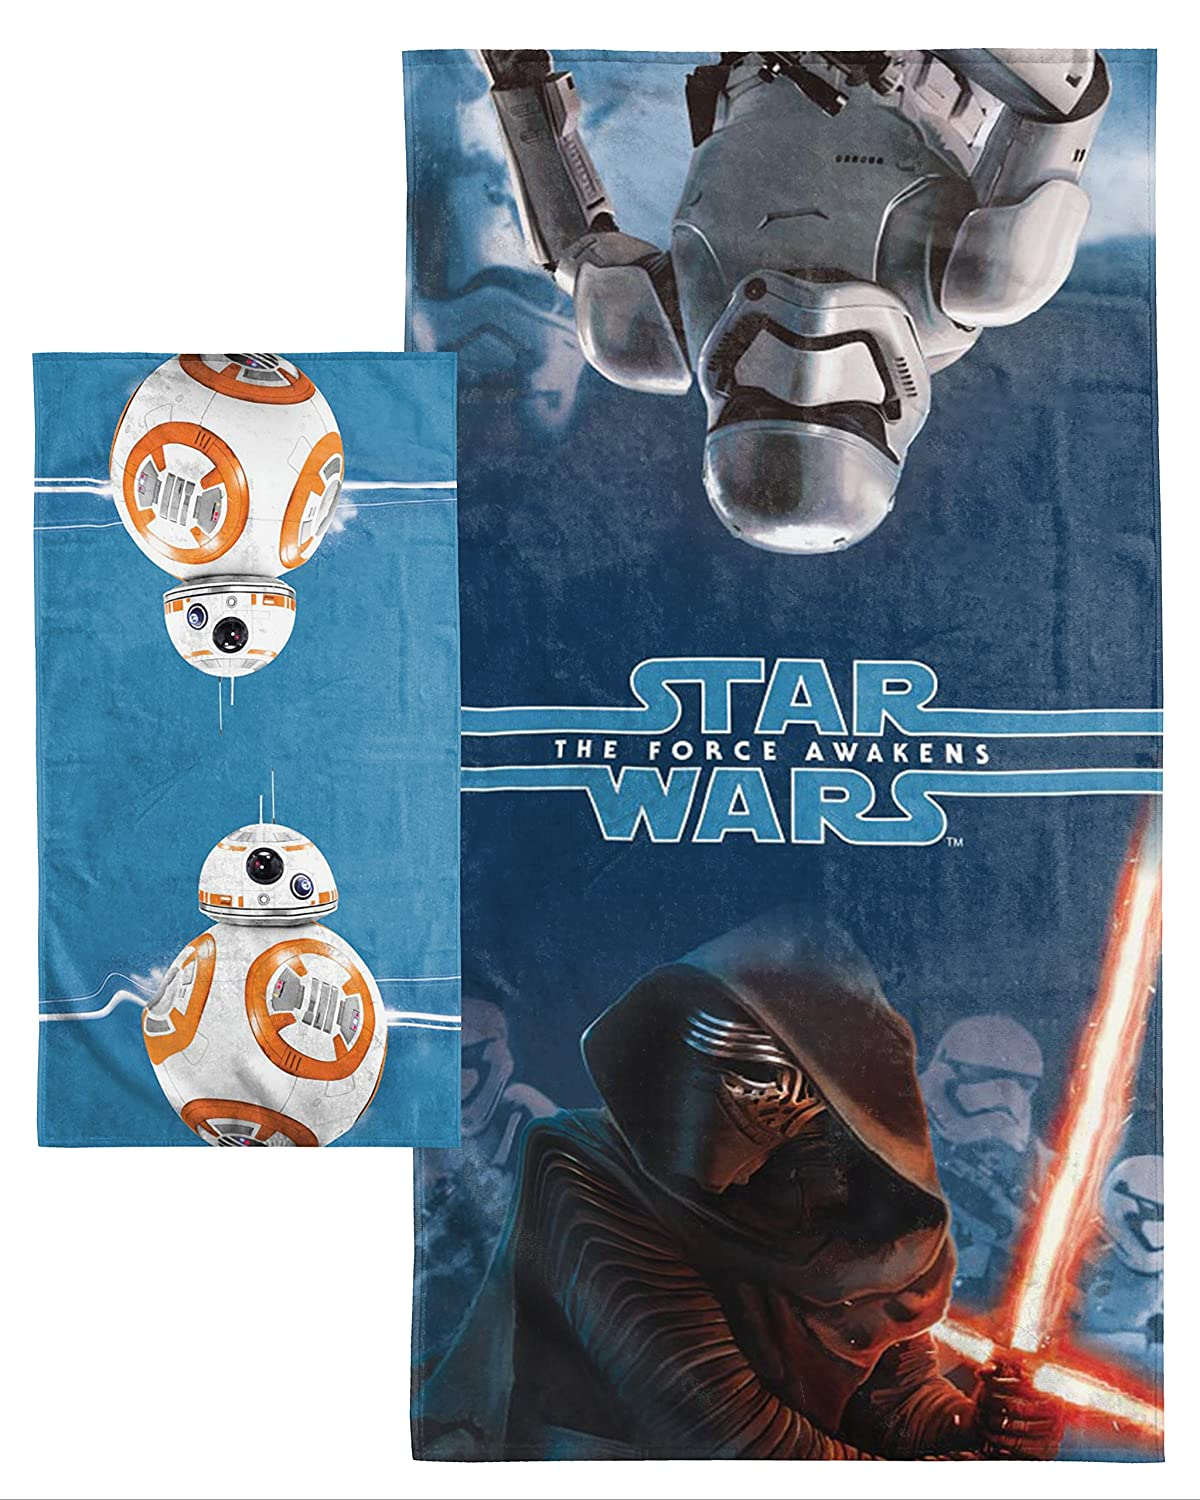 Star Wars Ep7 Battle Front 2 Piece Cotton Bath/Hand Set Jay Franco and Sons Inc. JF37068JFL